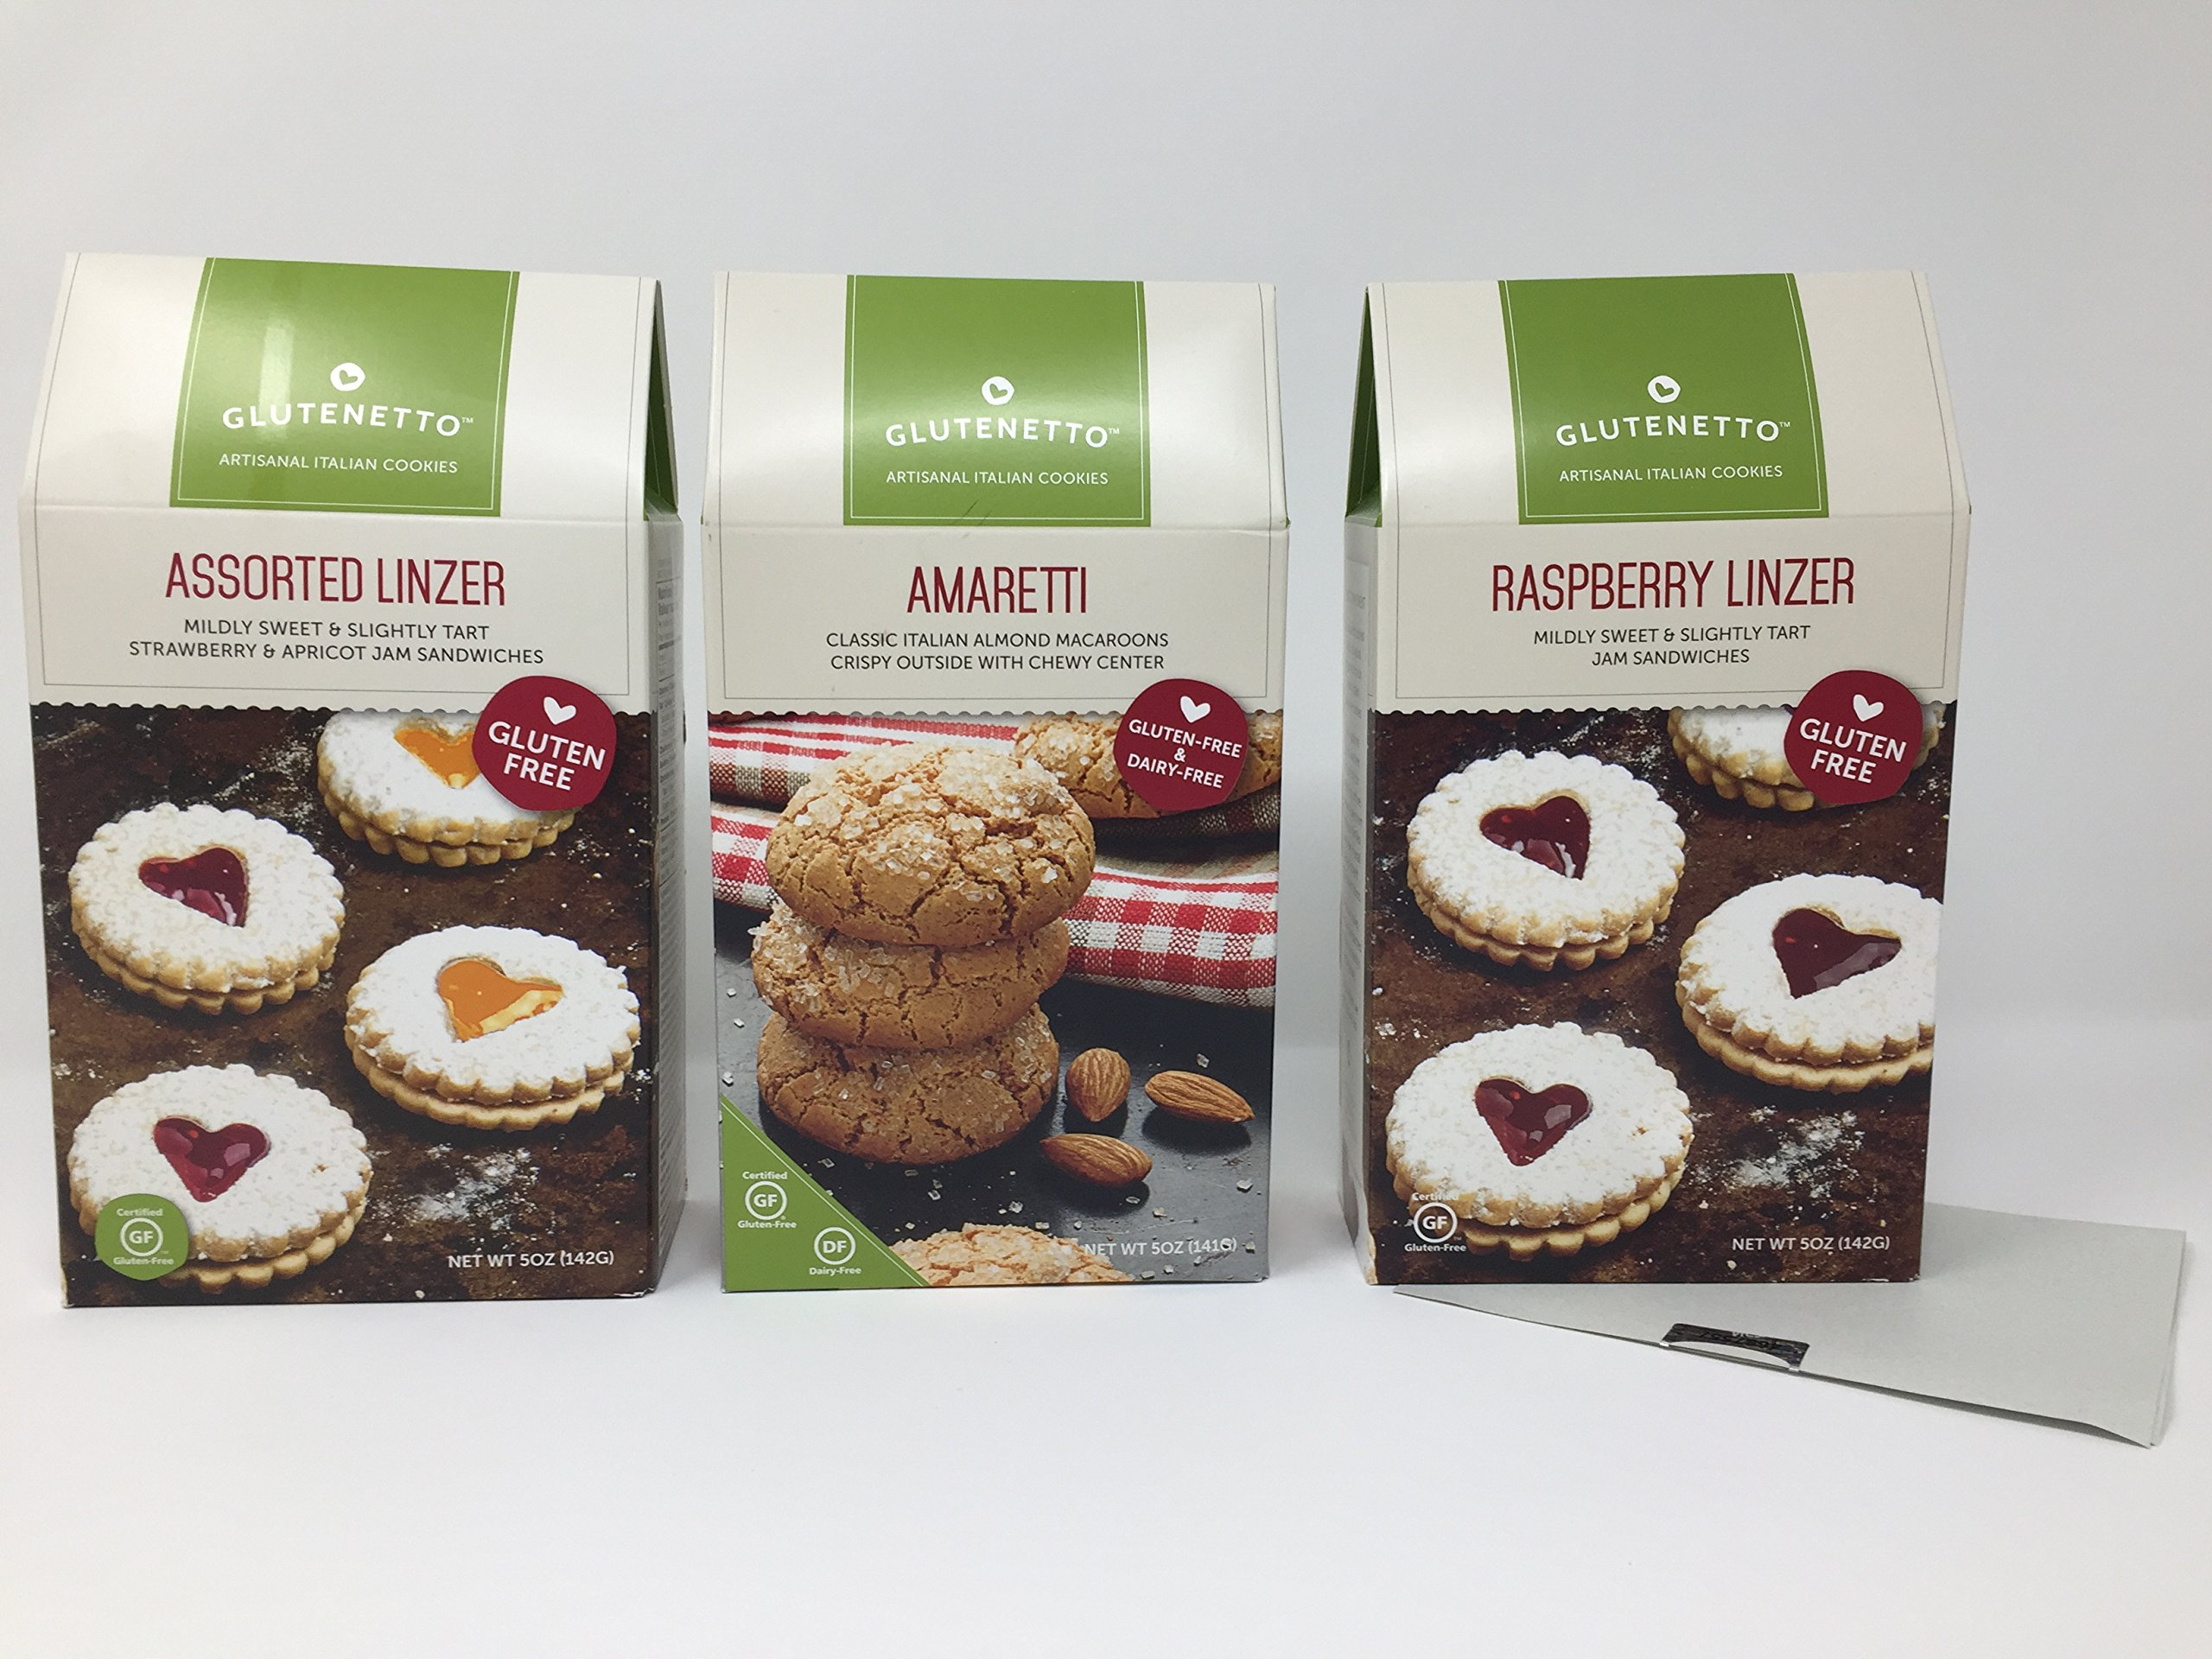 Gluten Free Cookies Glutenetto Gourmet Variety of 3: Raspberry Linzer, Asst Strawberry/Apricot And Amaretti Macaroons Plus a Bonus Free GF Nut Free Candy Recipe from Z-Organics. (3 Items+)